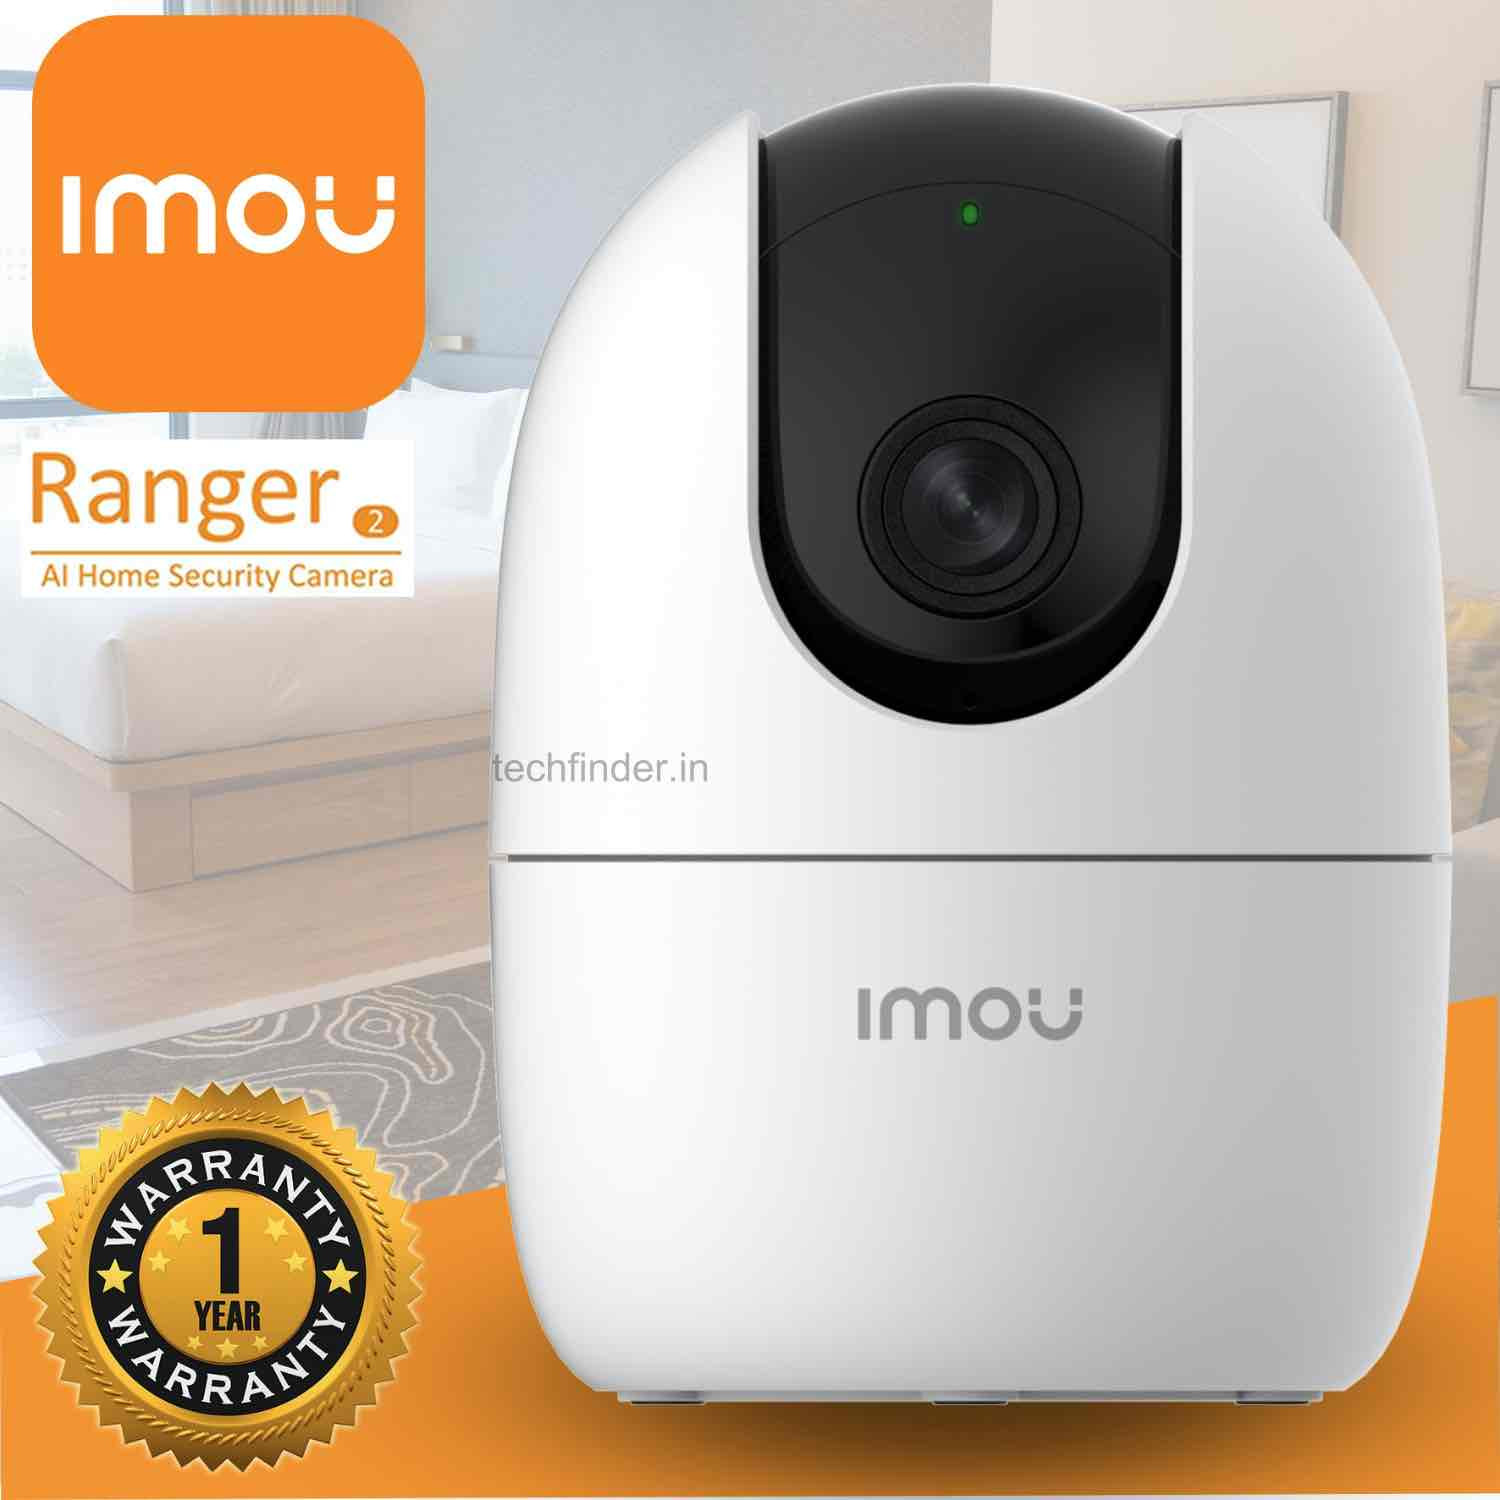 Dahua Imou Ranger 2 Wifi IP Dome Camera